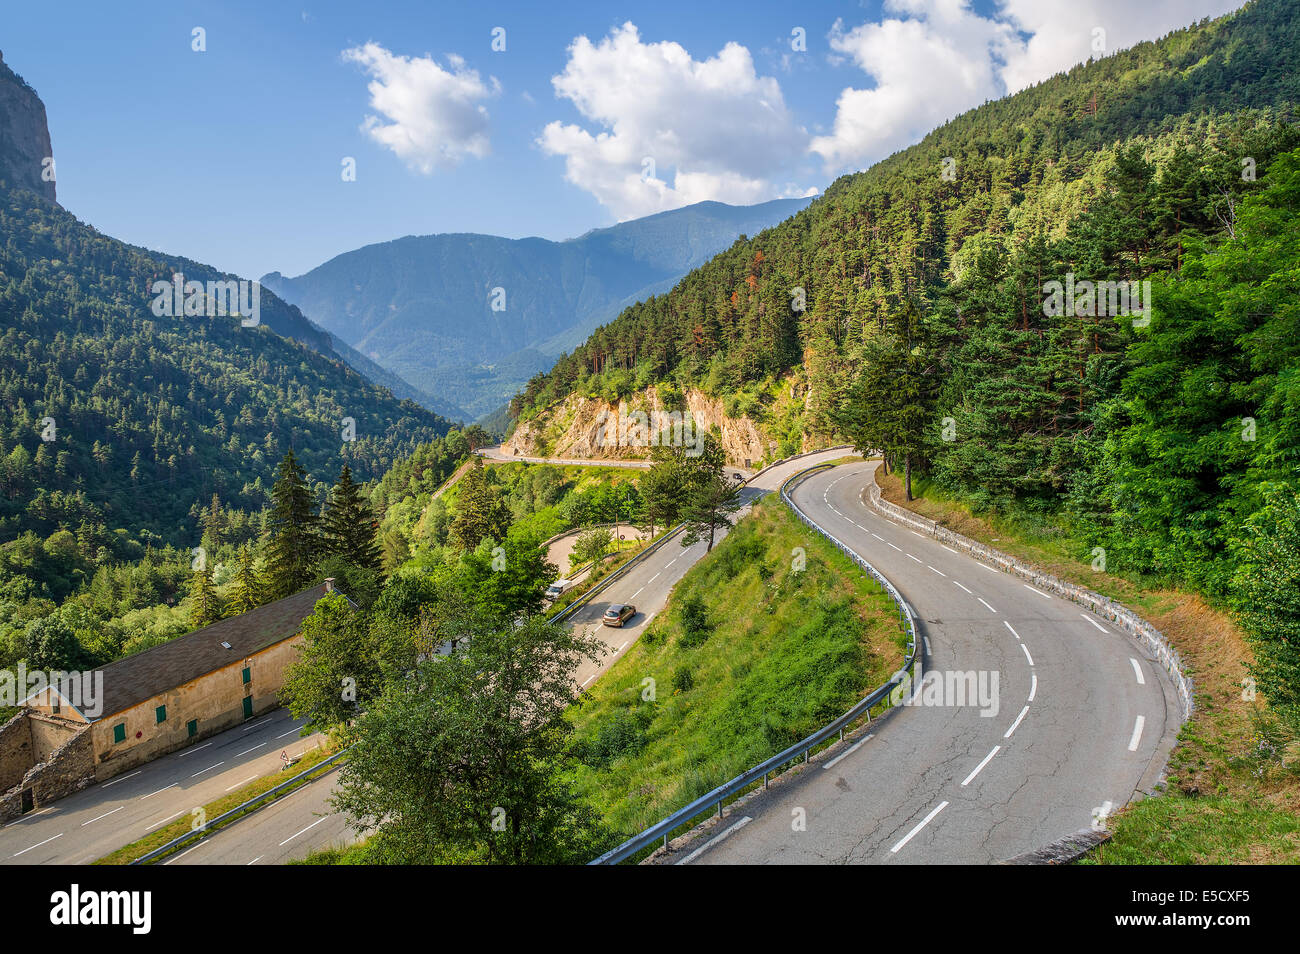 Narrow alpine highway on French-Italian border in Alps, France (view from above). Stock Photo